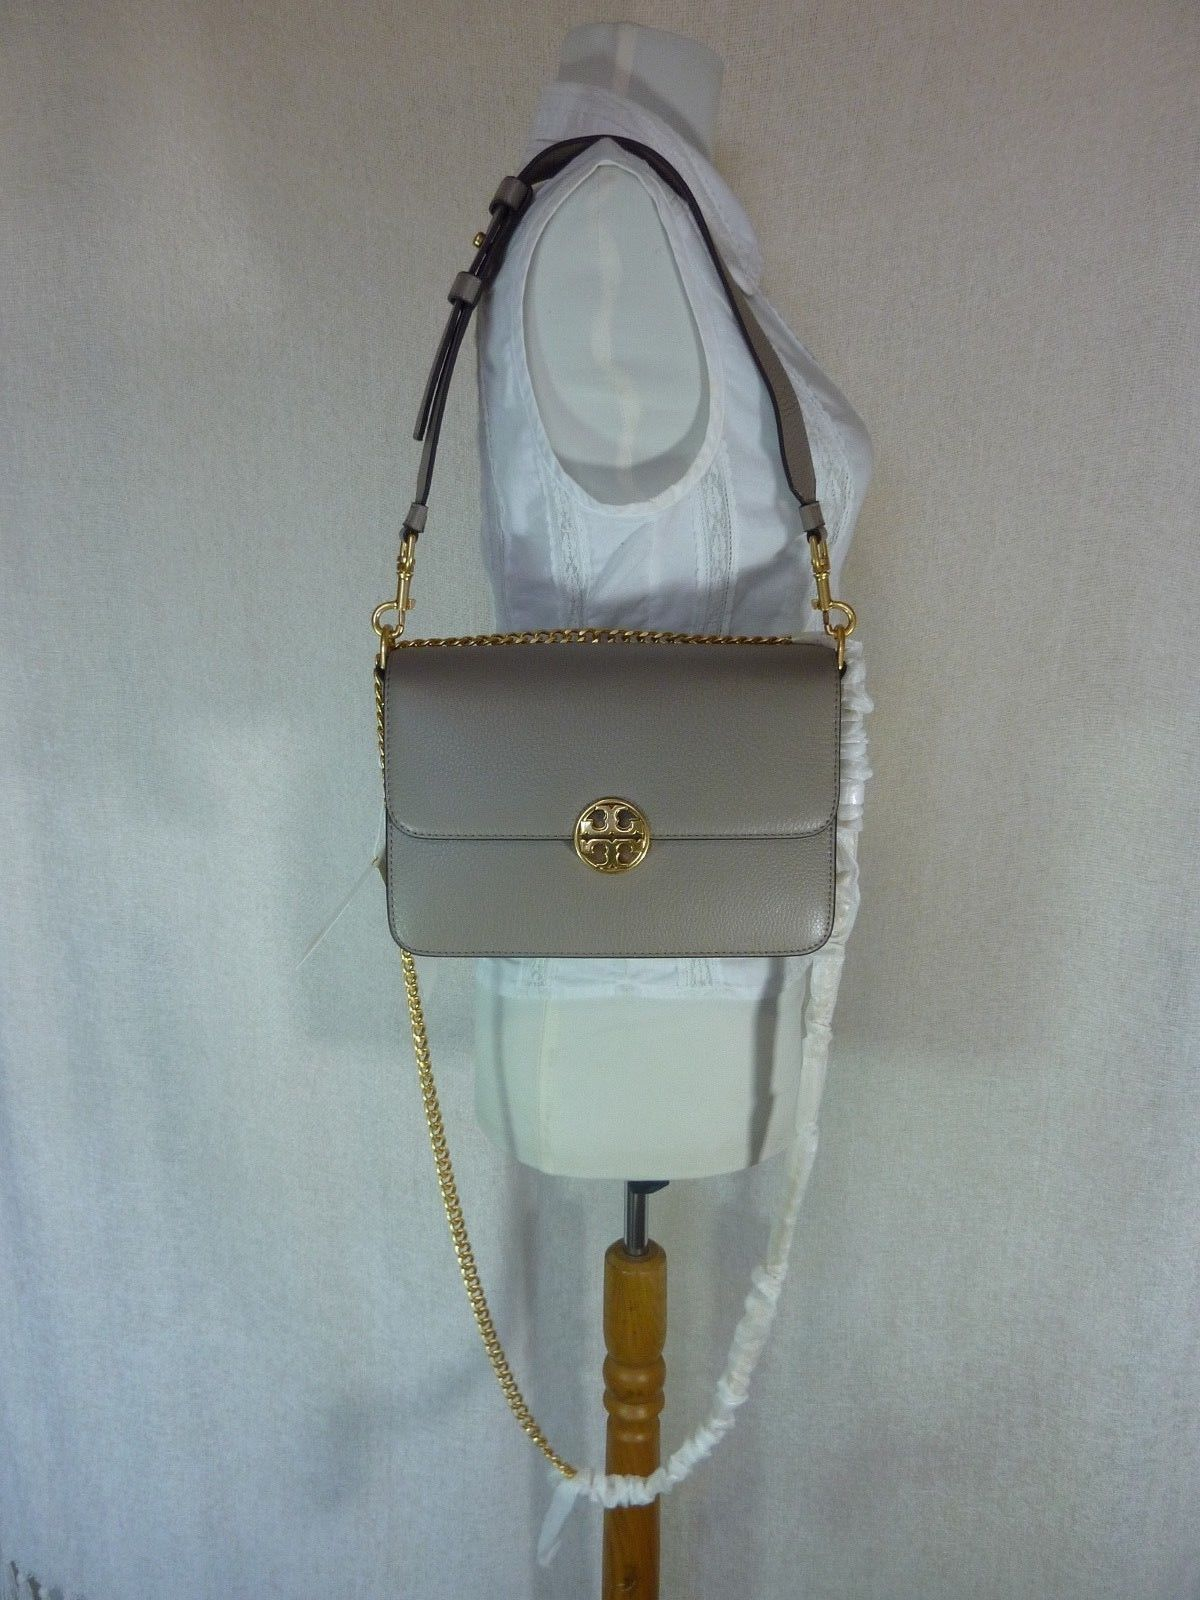 Primary image for NWT Tory Burch Gray Heron Chelsea Convertible Shoulder Bag